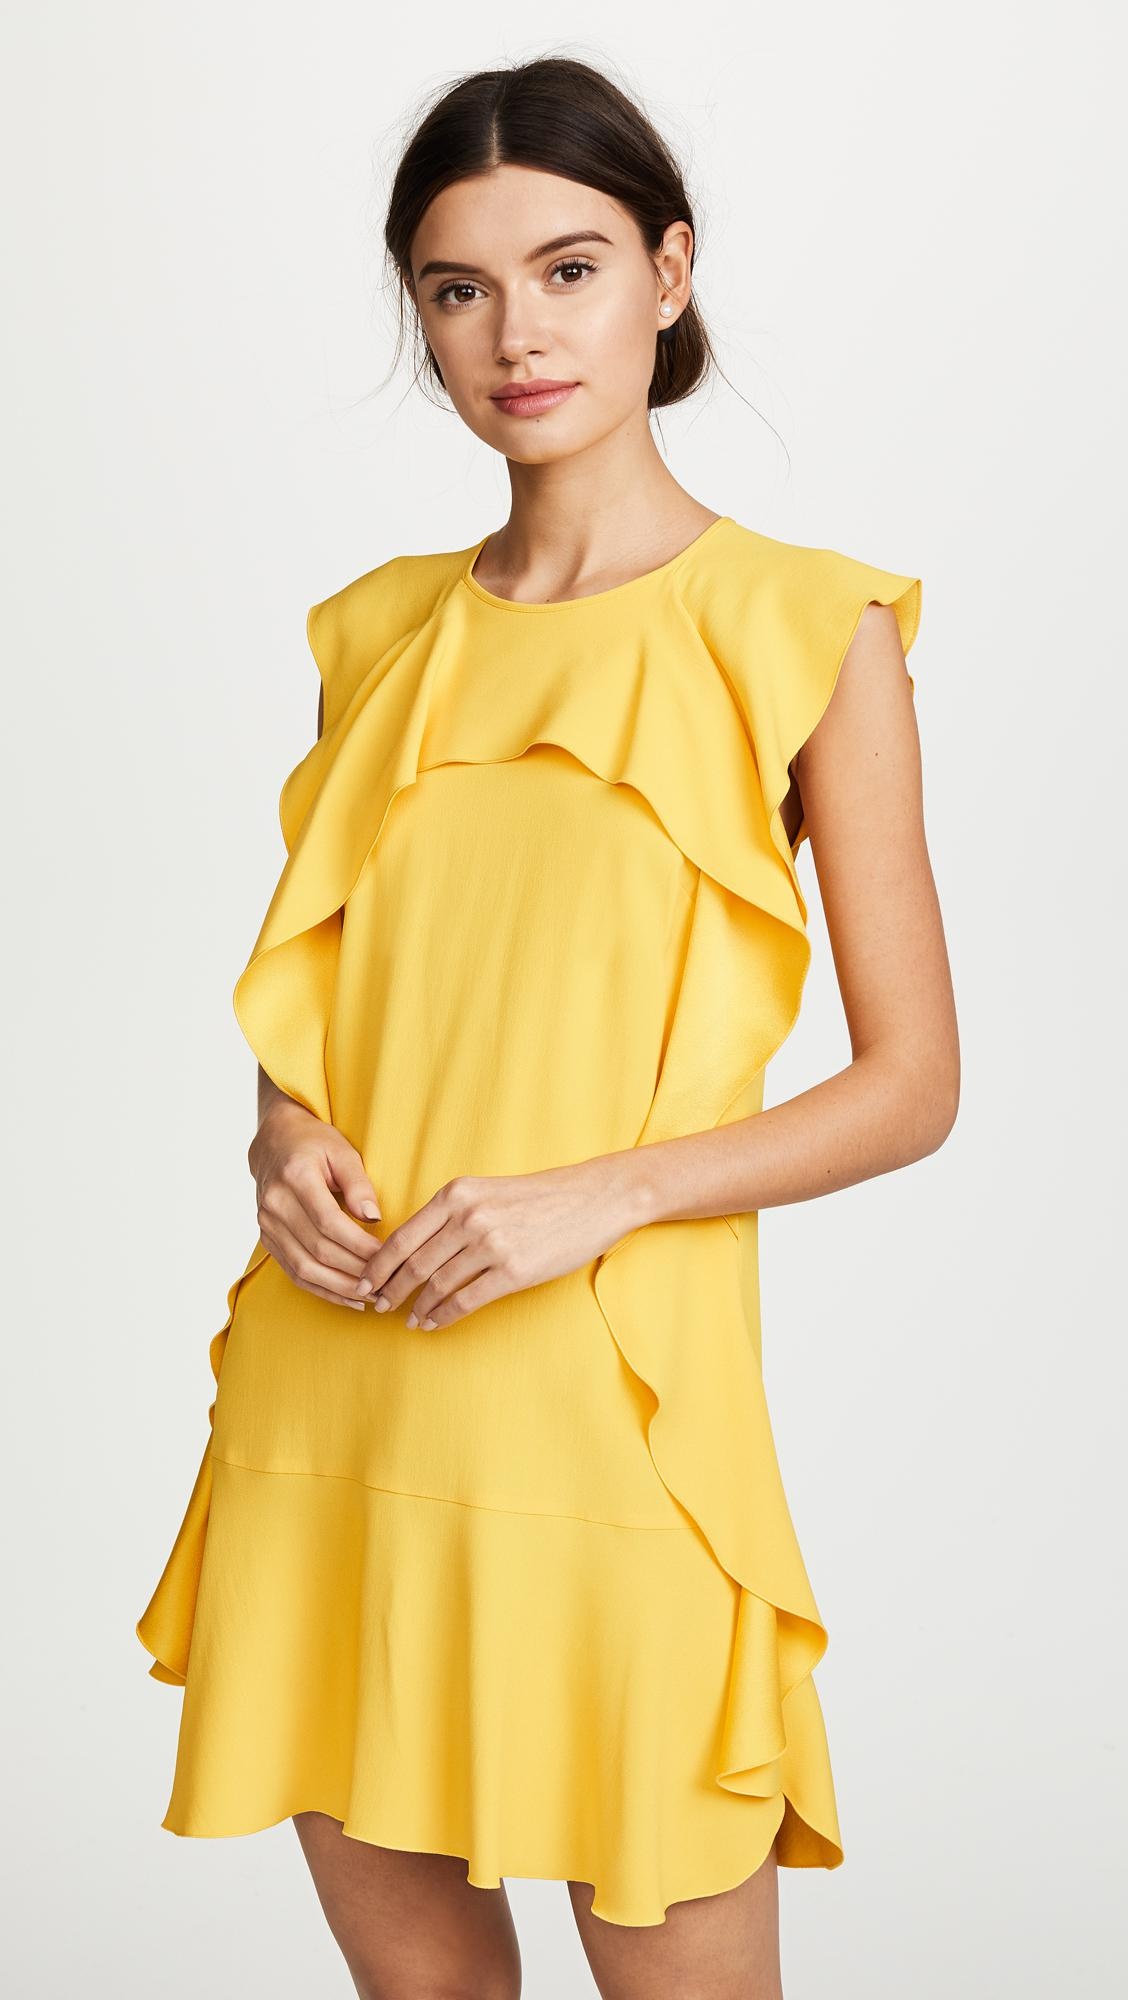 Lyst - Red valentino Ruffle Dress in Yellow